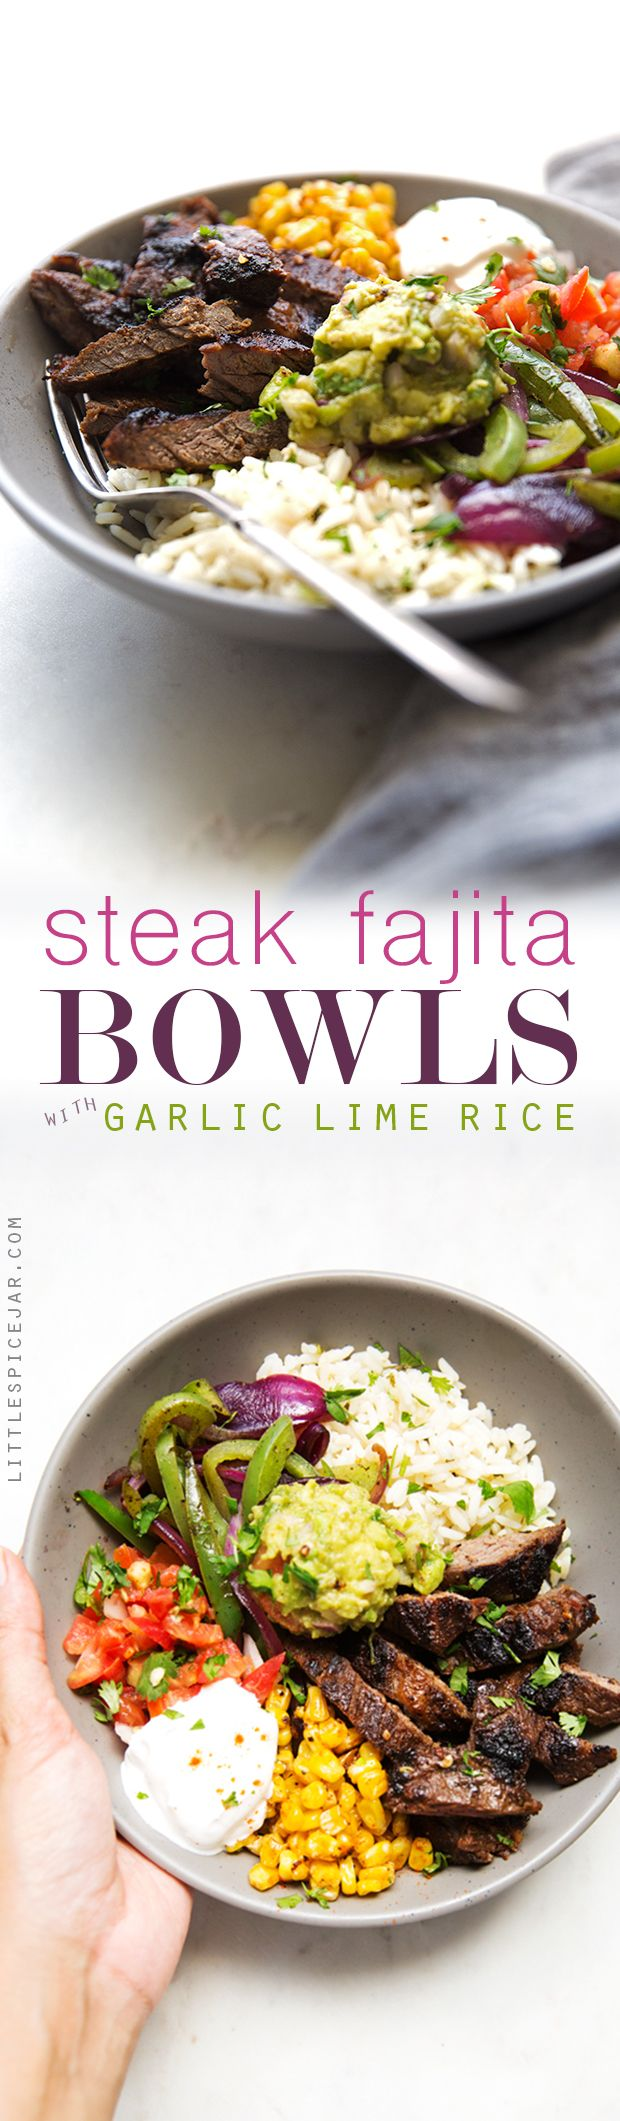 Homemade steak fajita bowls with garlic lime rice. These fajita bowls taste even better than the ones at Chipotle! The secret is the homemade marinade for the steak... it is to DIE for! +